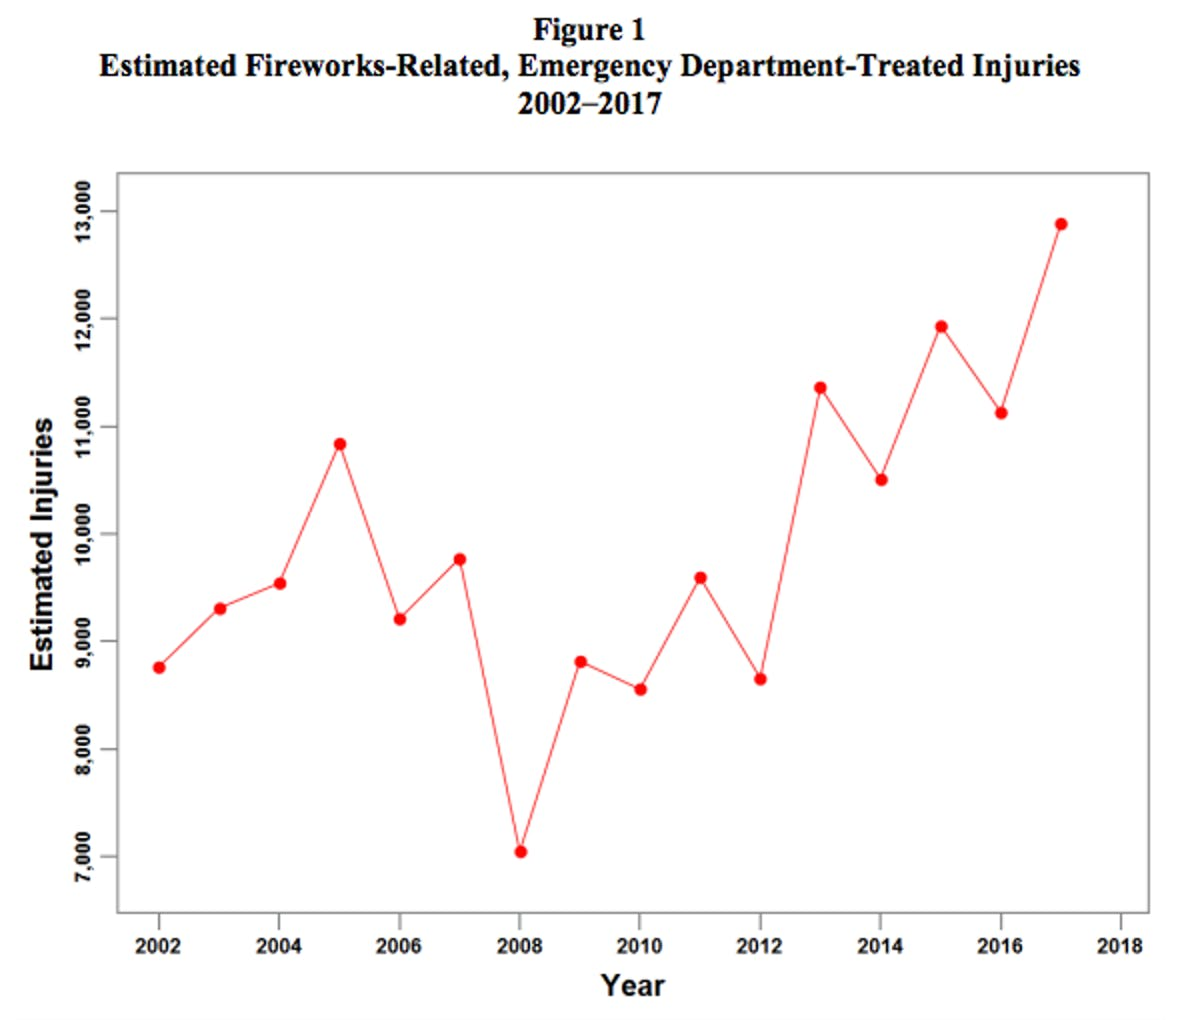 Fireworks injuries in the US over time.